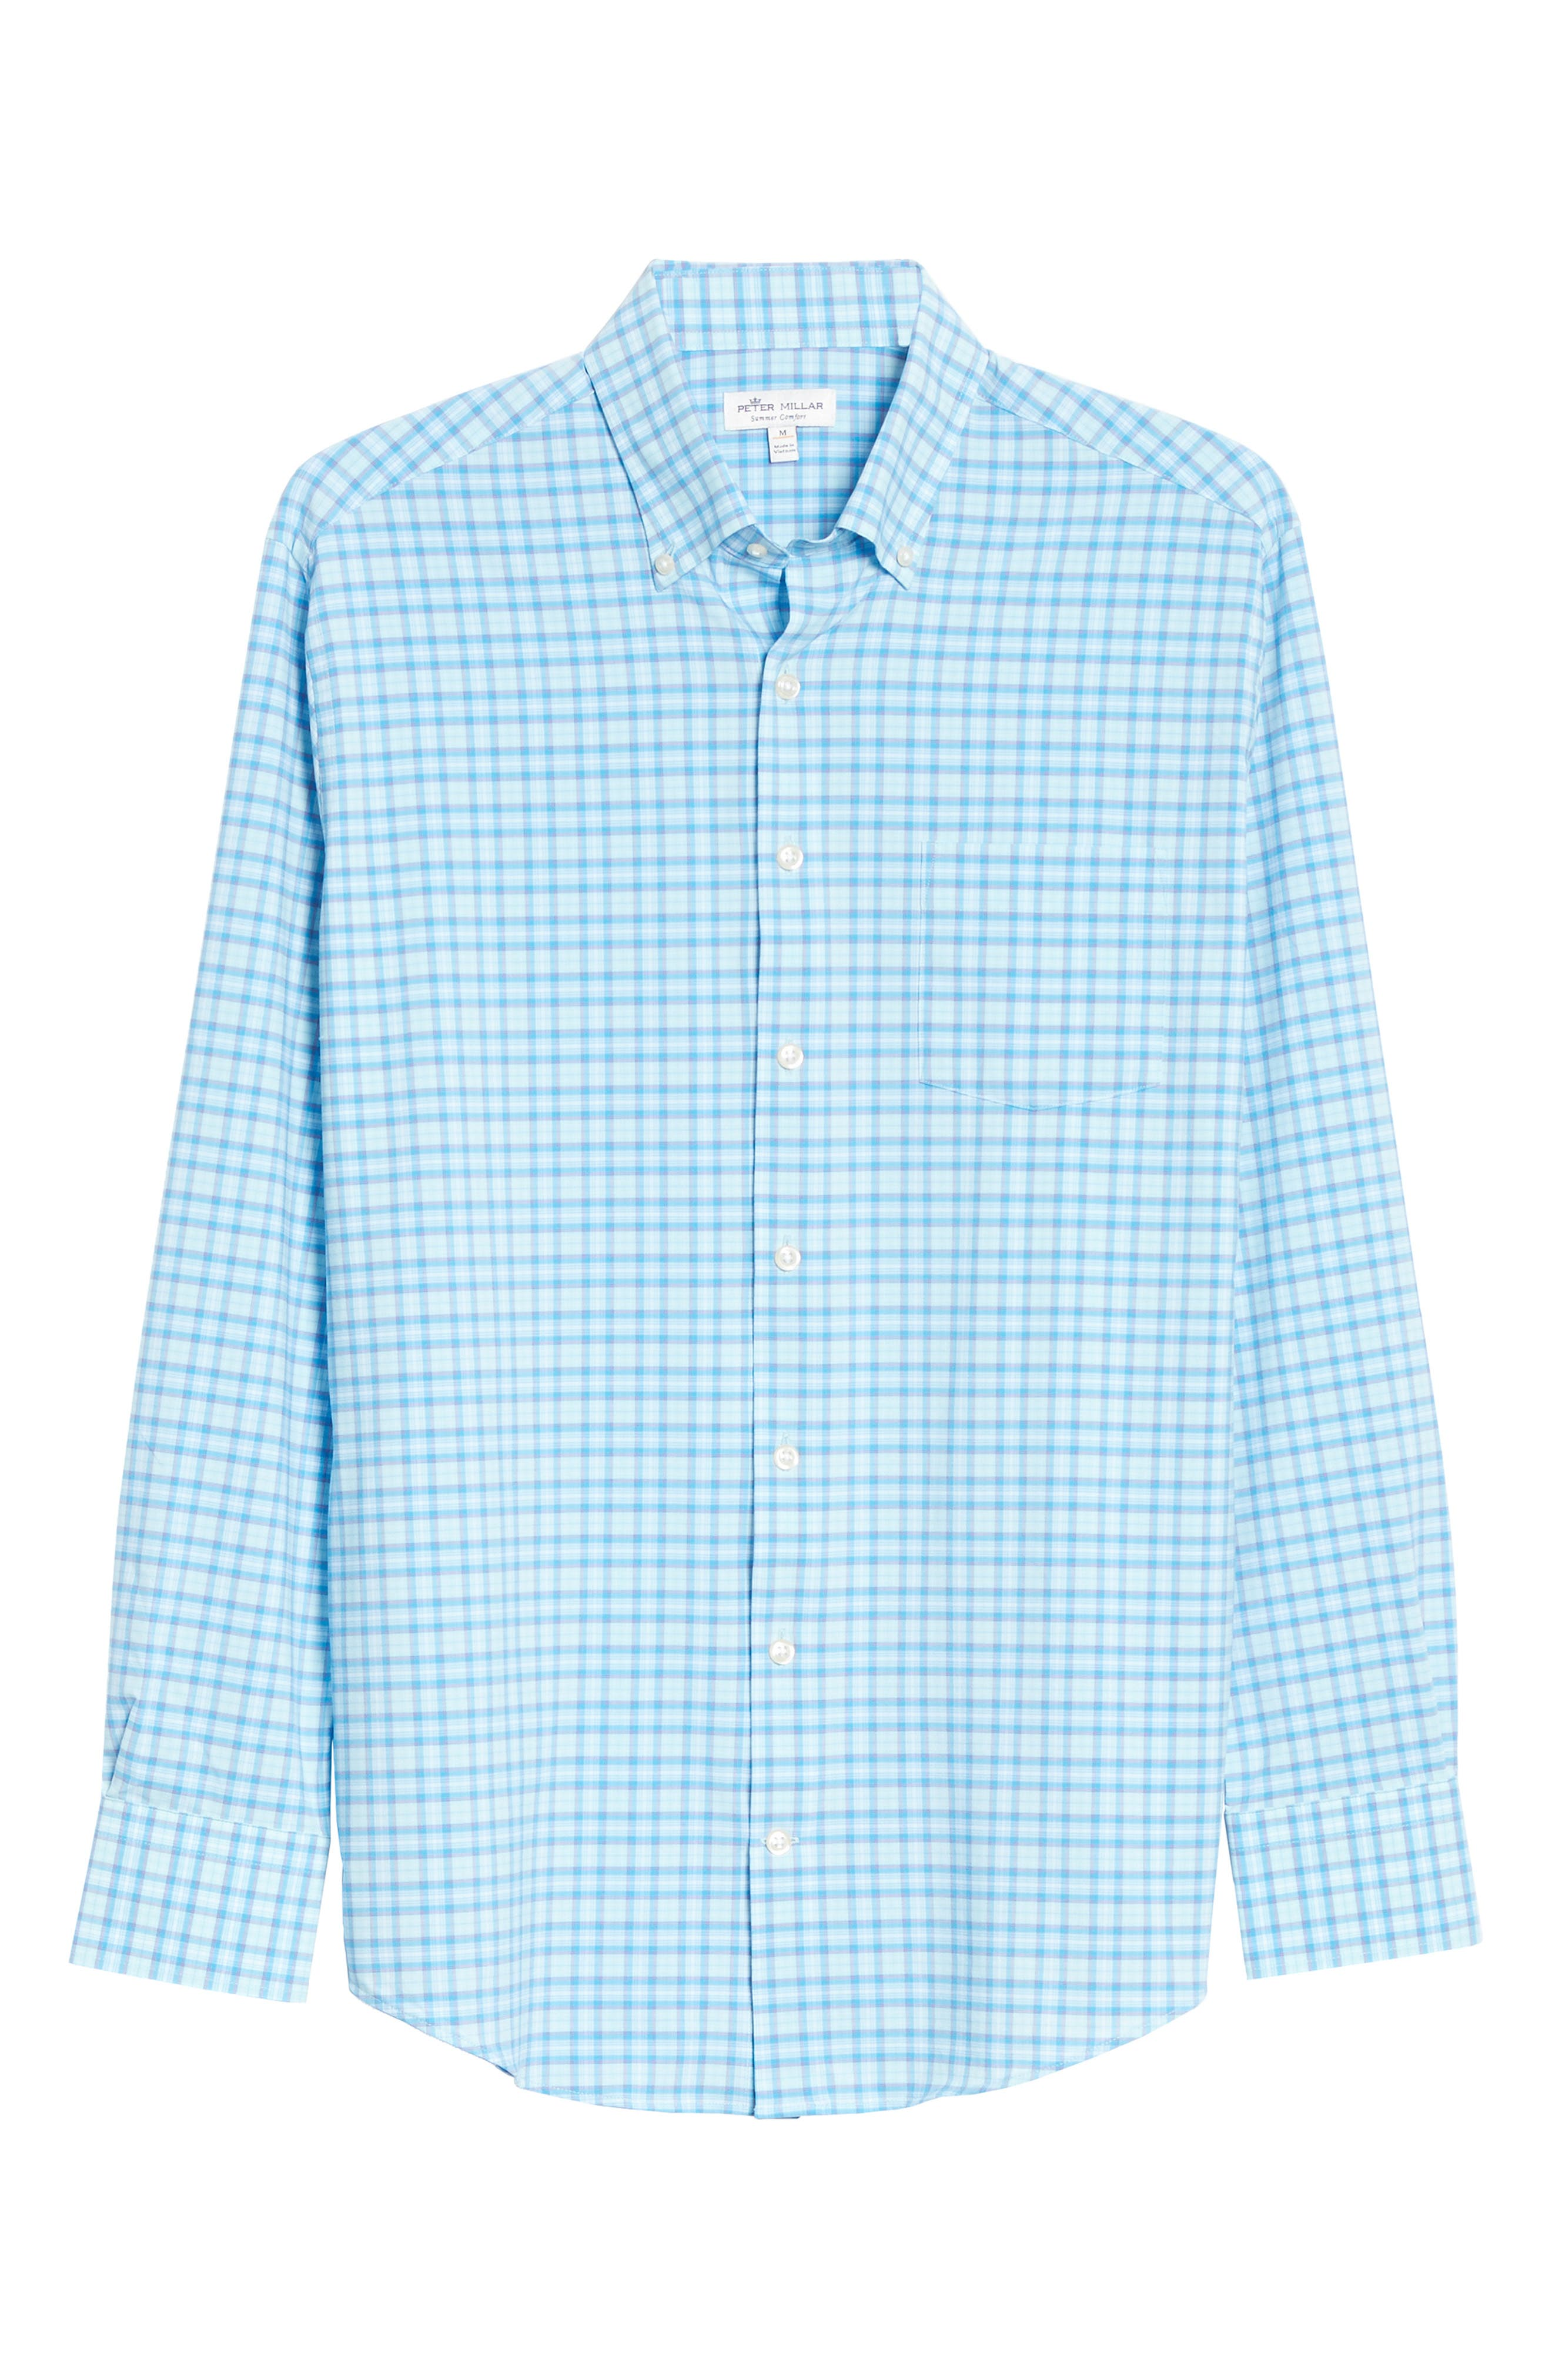 Image of Peter Millar 4-Way Stretch Woven Shirt